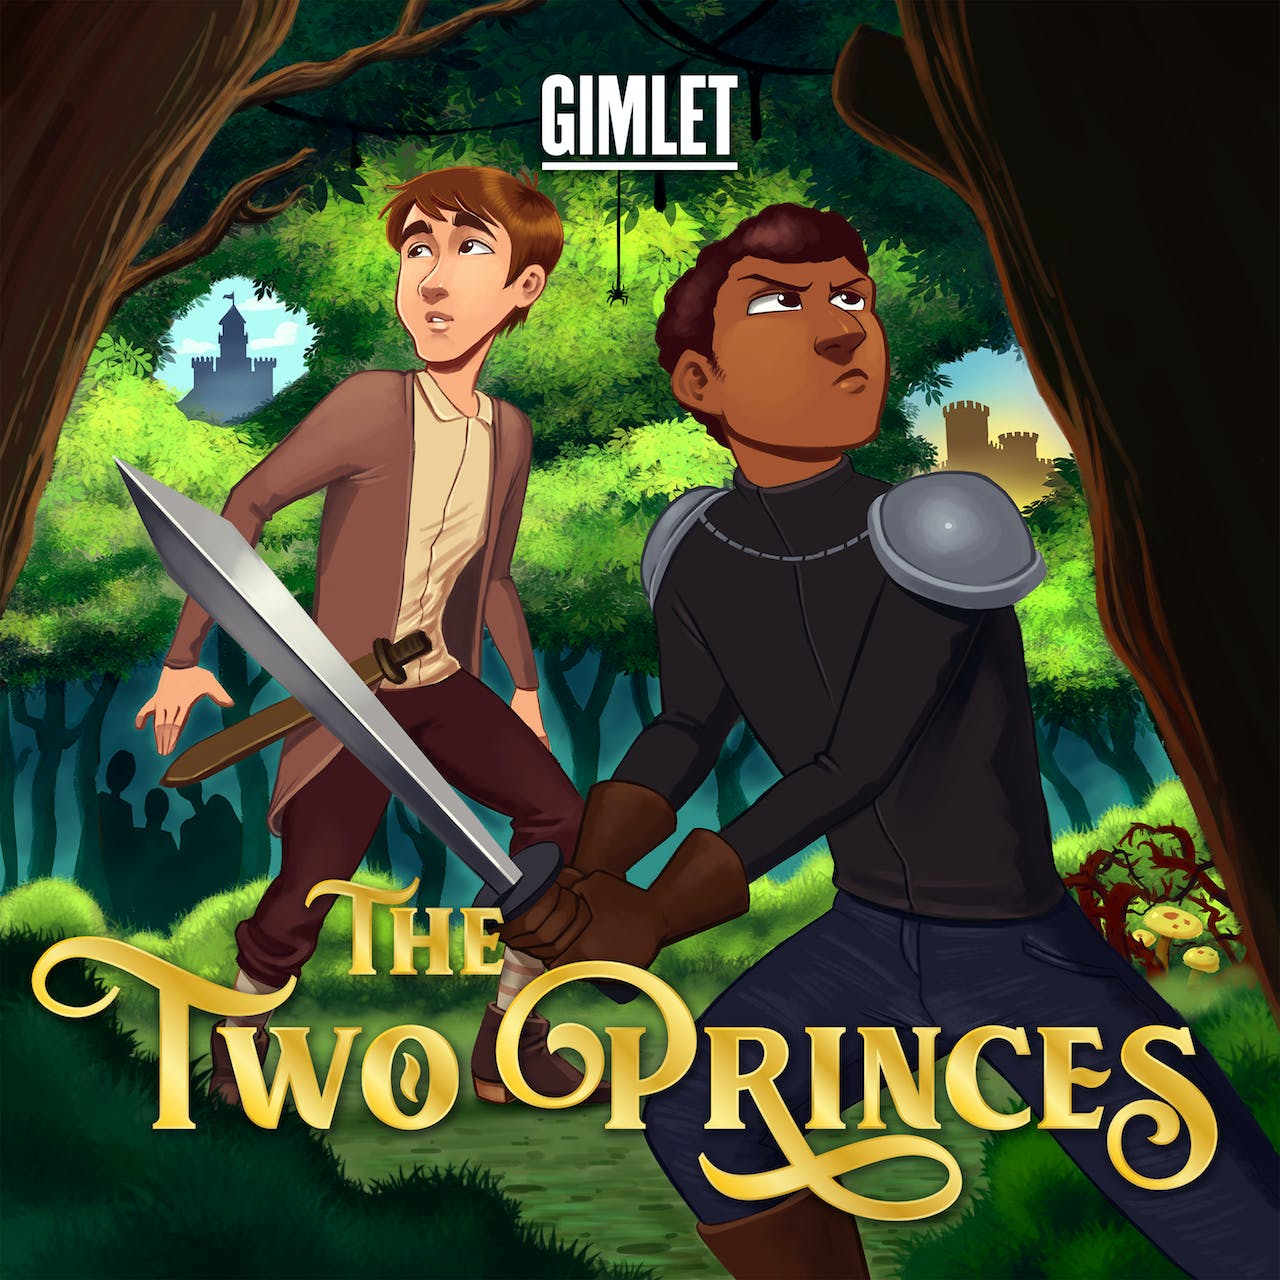 S1 Ep2: Prince and Thief